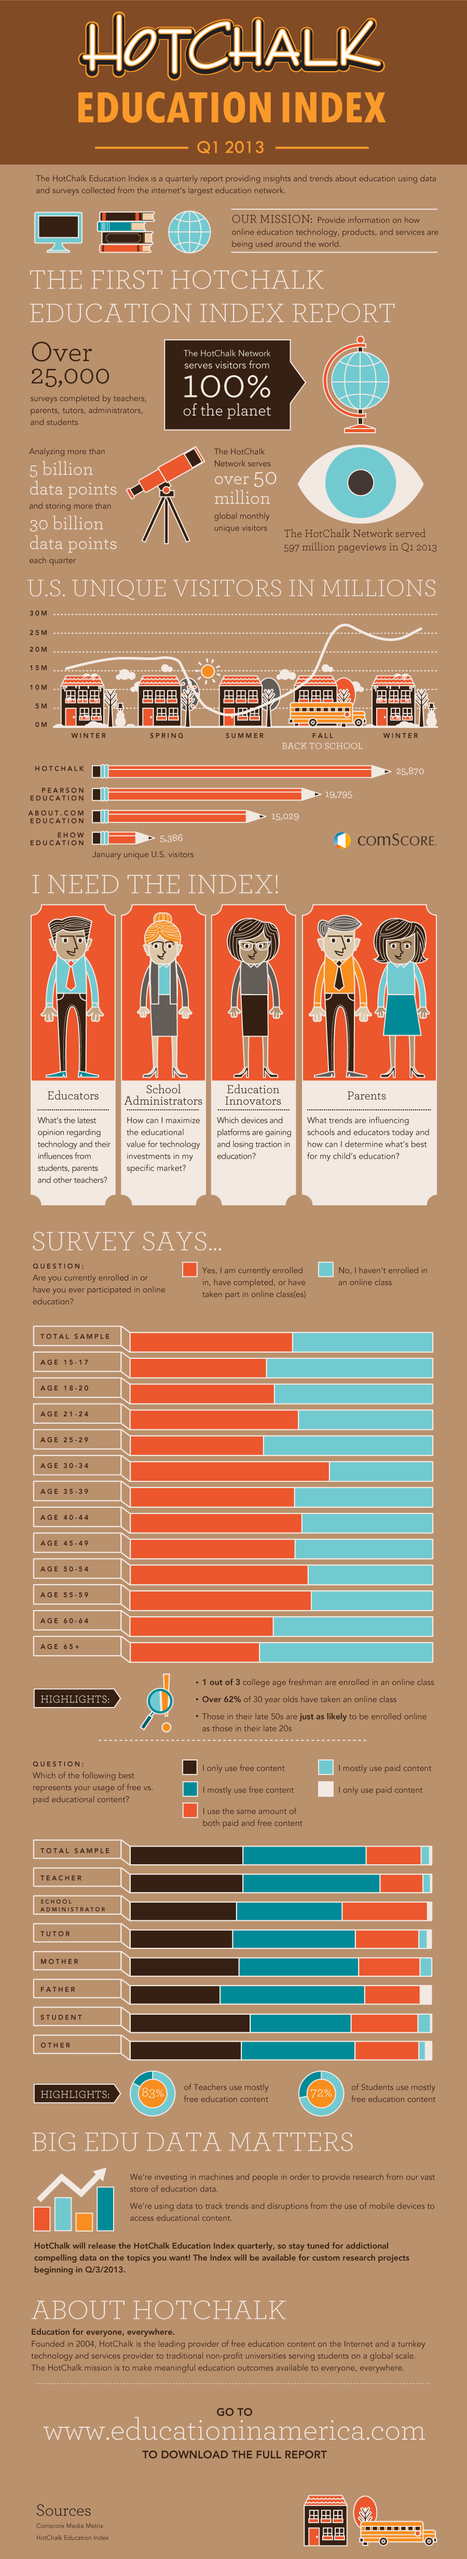 New Survey Uncovers Big Trends In Online Learning [Infographic] | LilianaM | Scoop.it